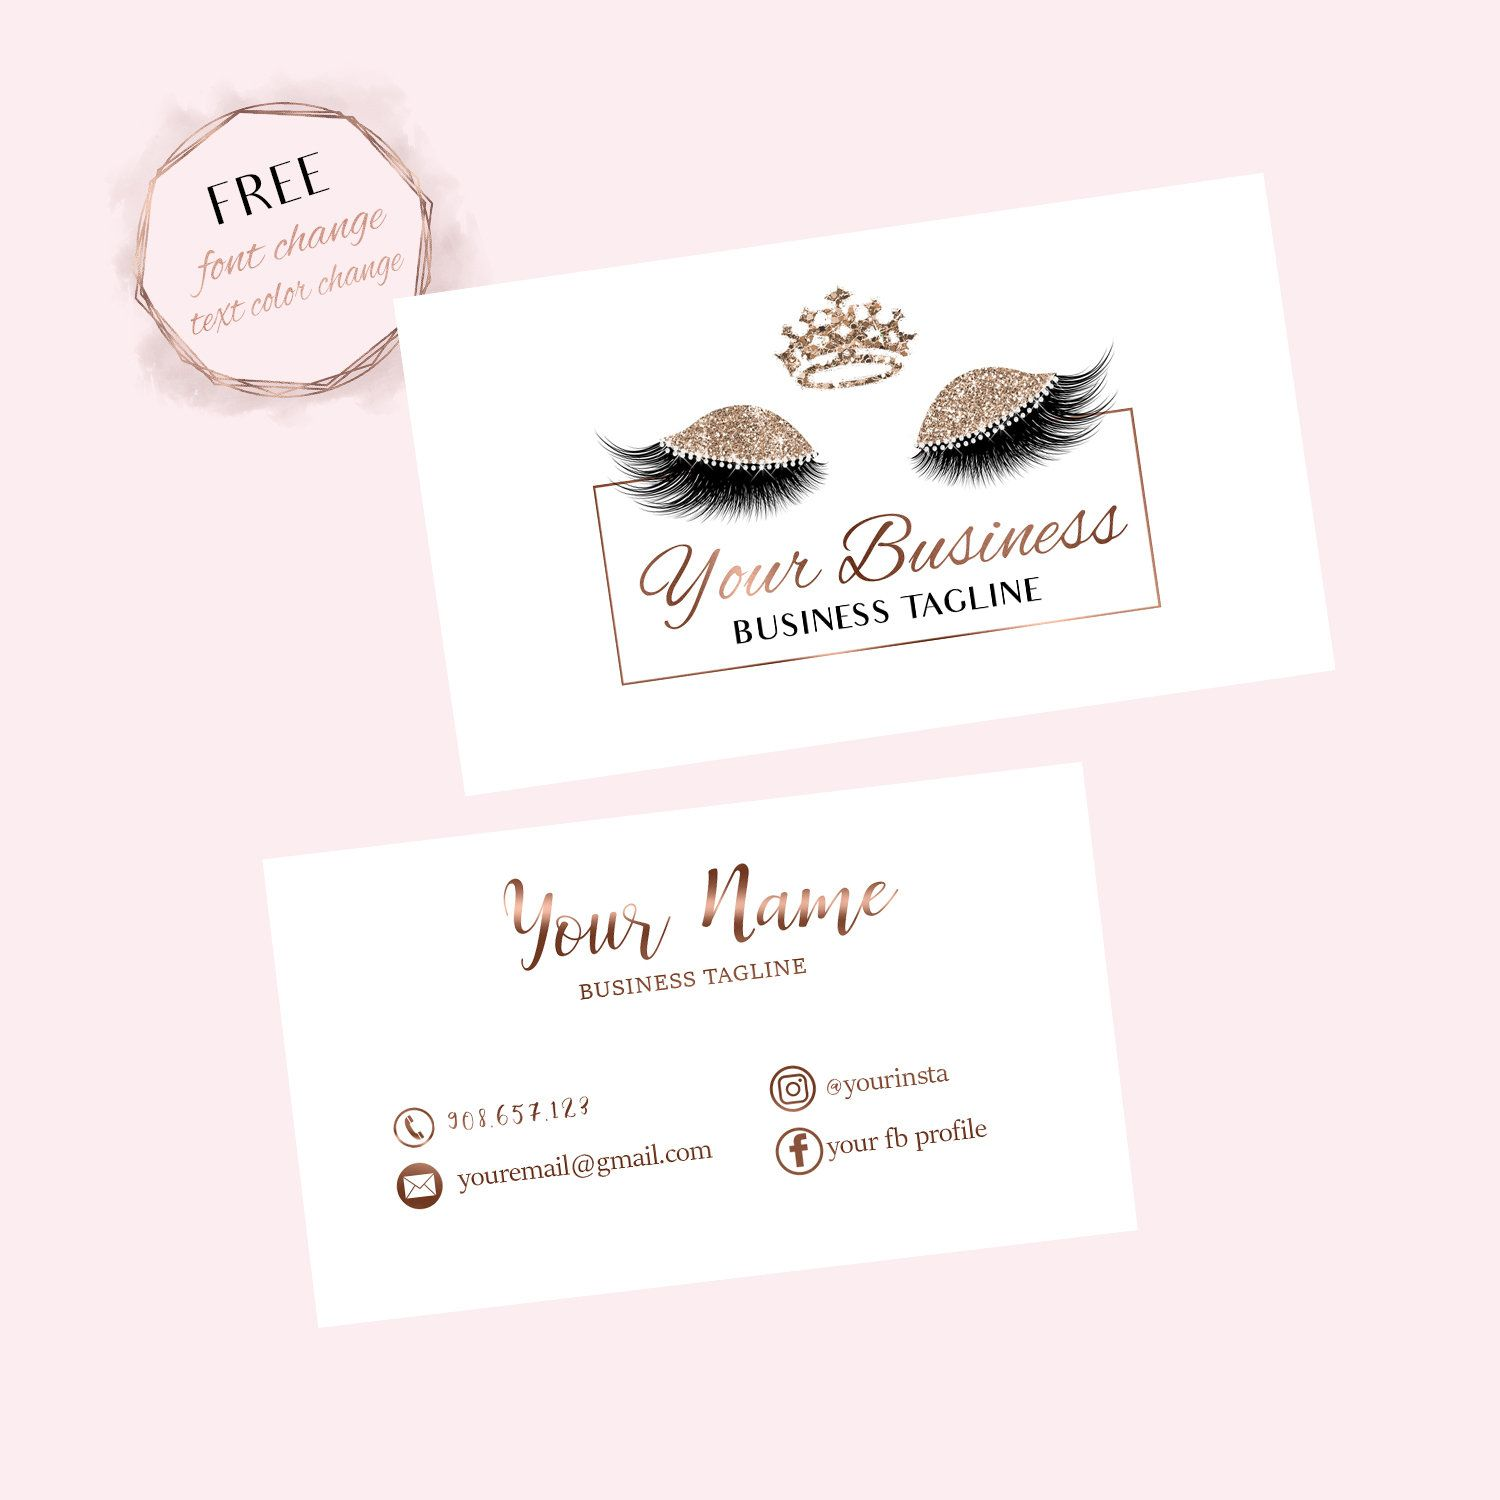 Lashes Business Card Eyelash Business Card Makeup Business Card Makeup Artist Busine Makeup Business Cards Makeup Artist Business Cards Salon Business Cards